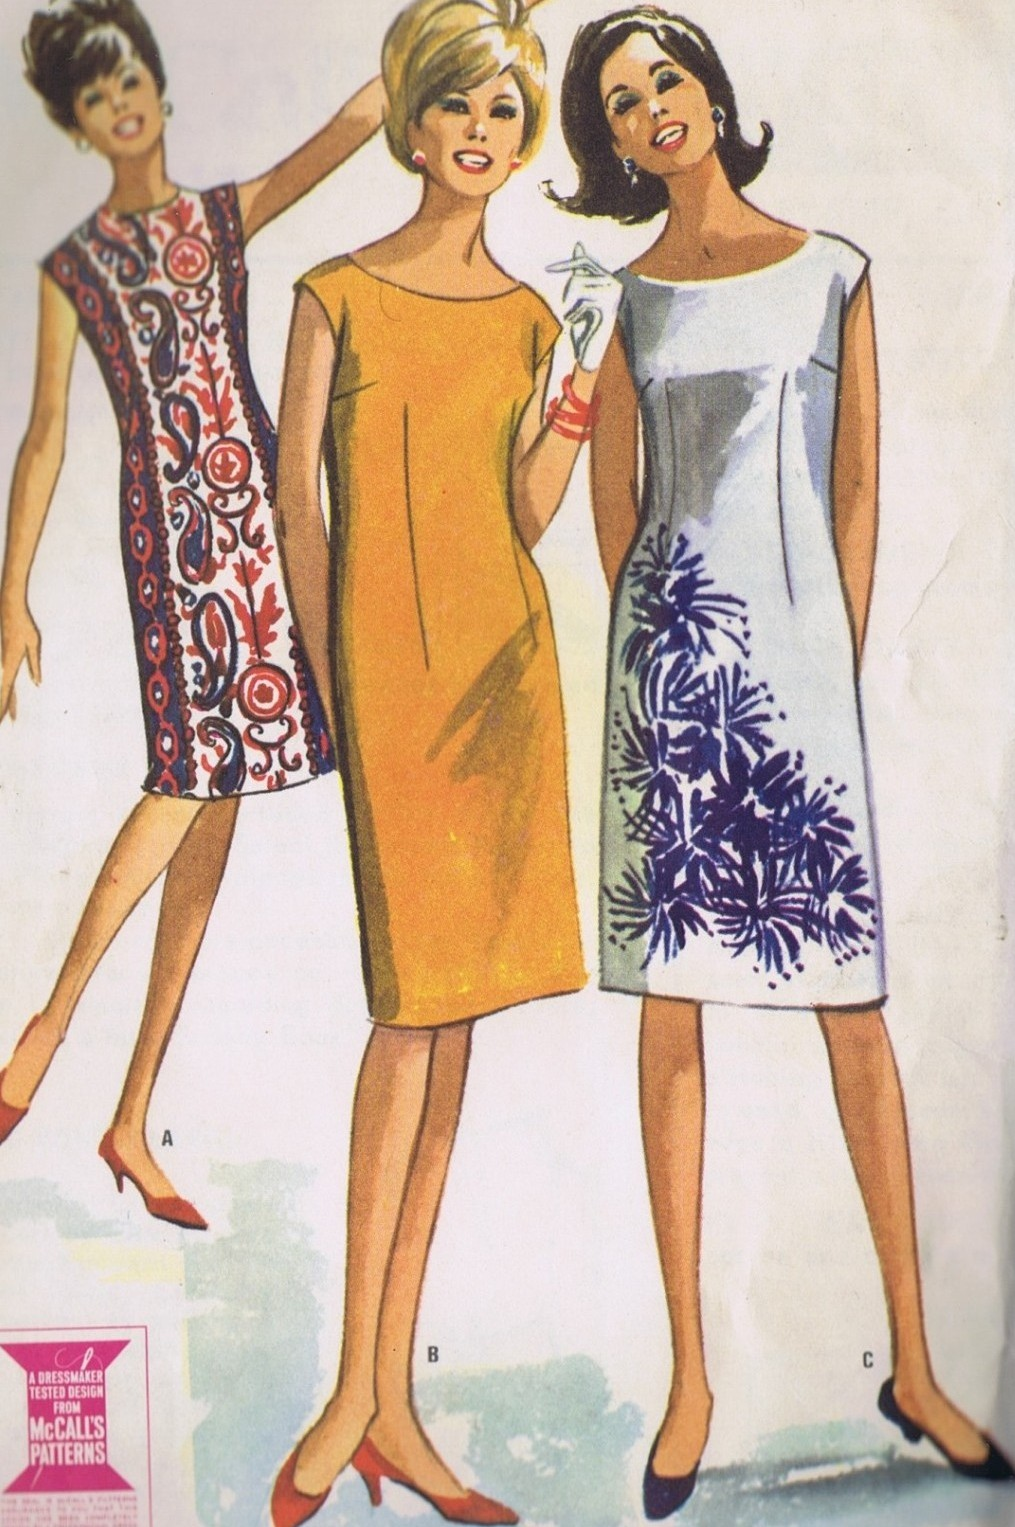 7196 McCall's Sheath Dress Vintage Sewing Pattern Large Bust 36-38 Inches Uncut